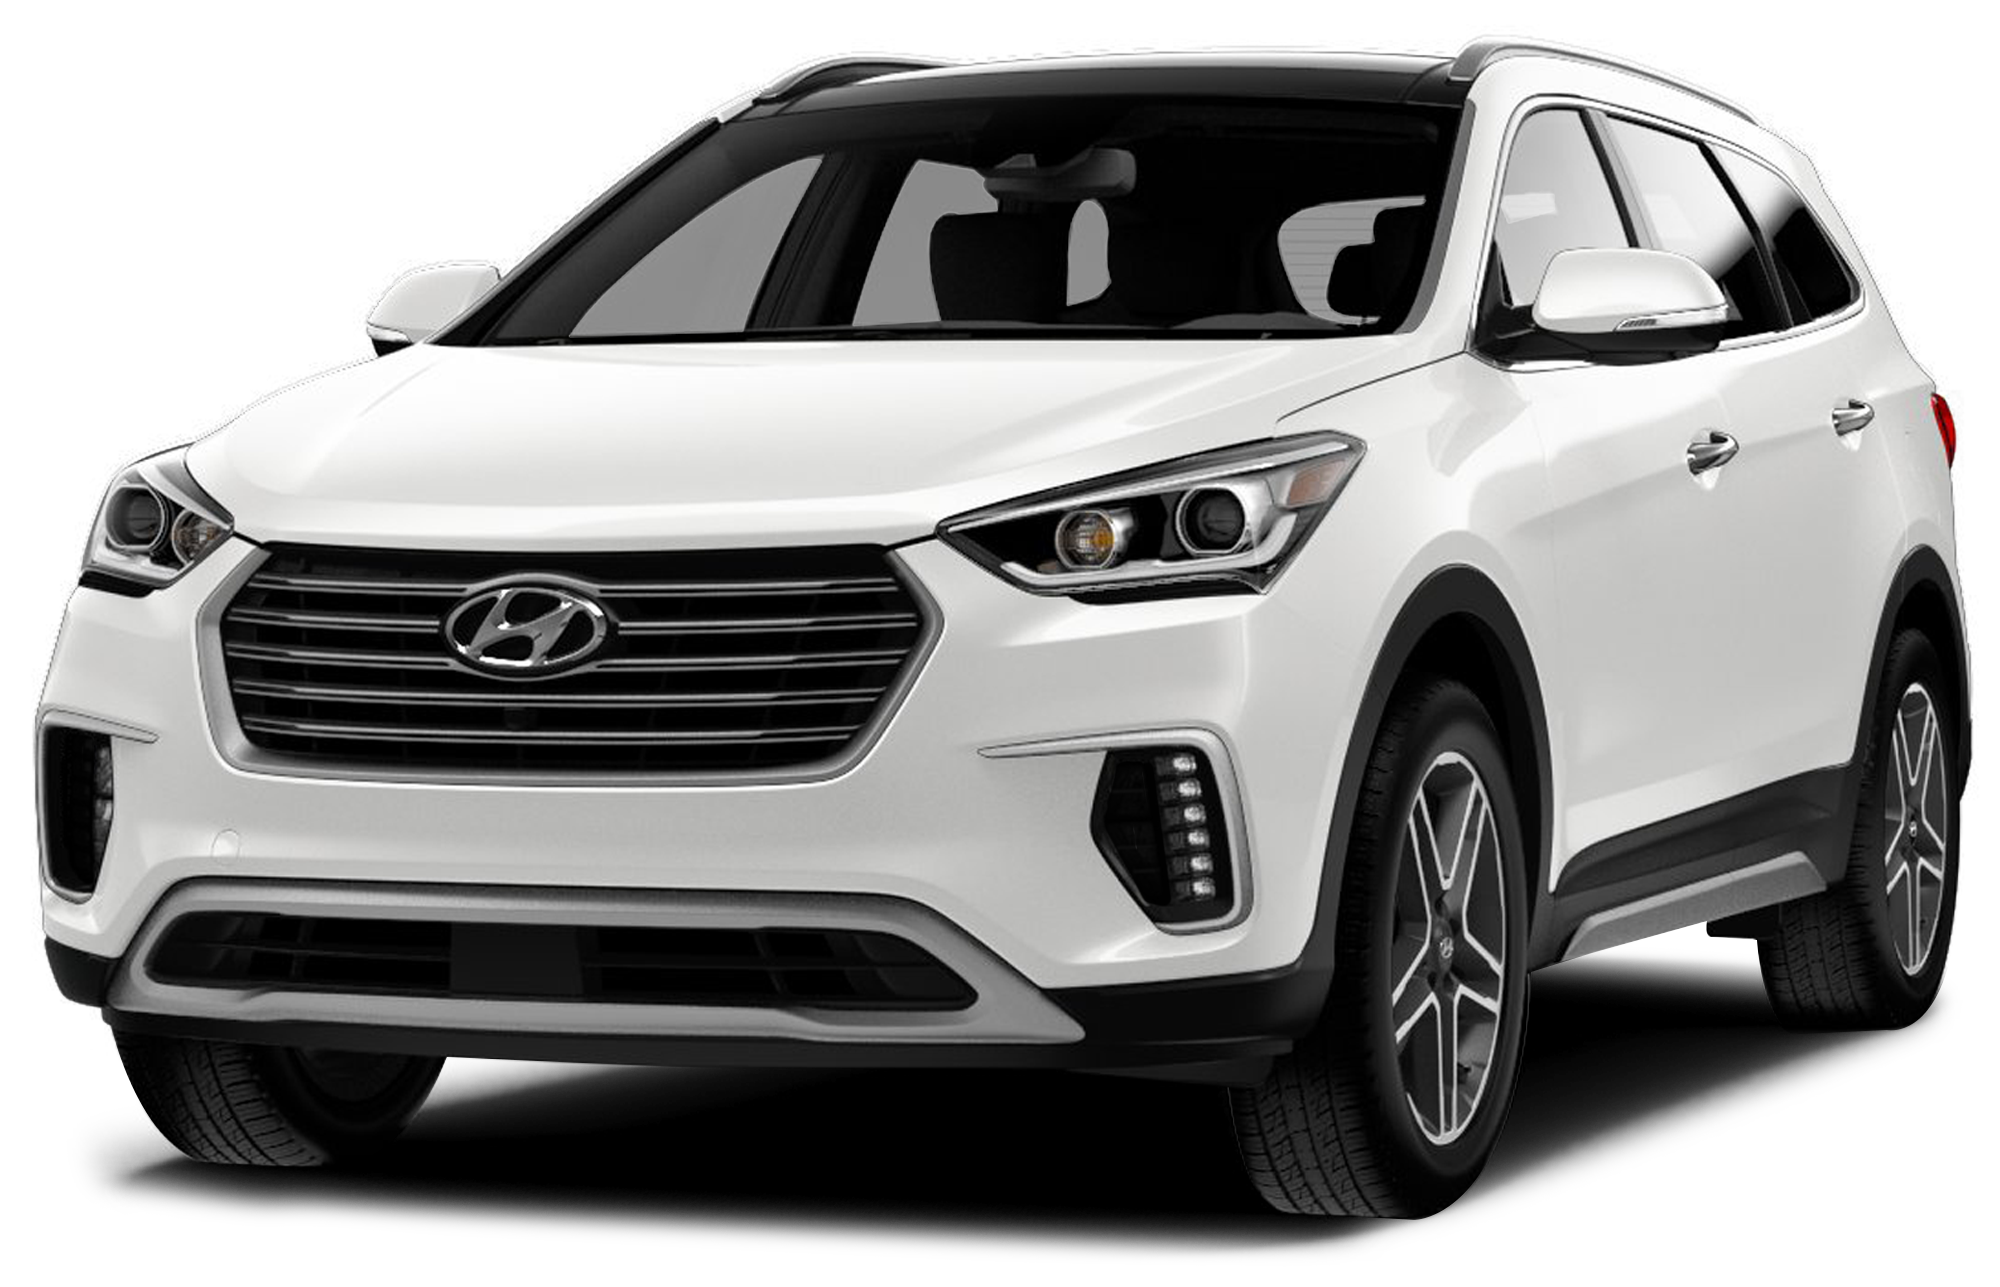 2019 hyundai santa fe xl incentives specials offers in. Black Bedroom Furniture Sets. Home Design Ideas